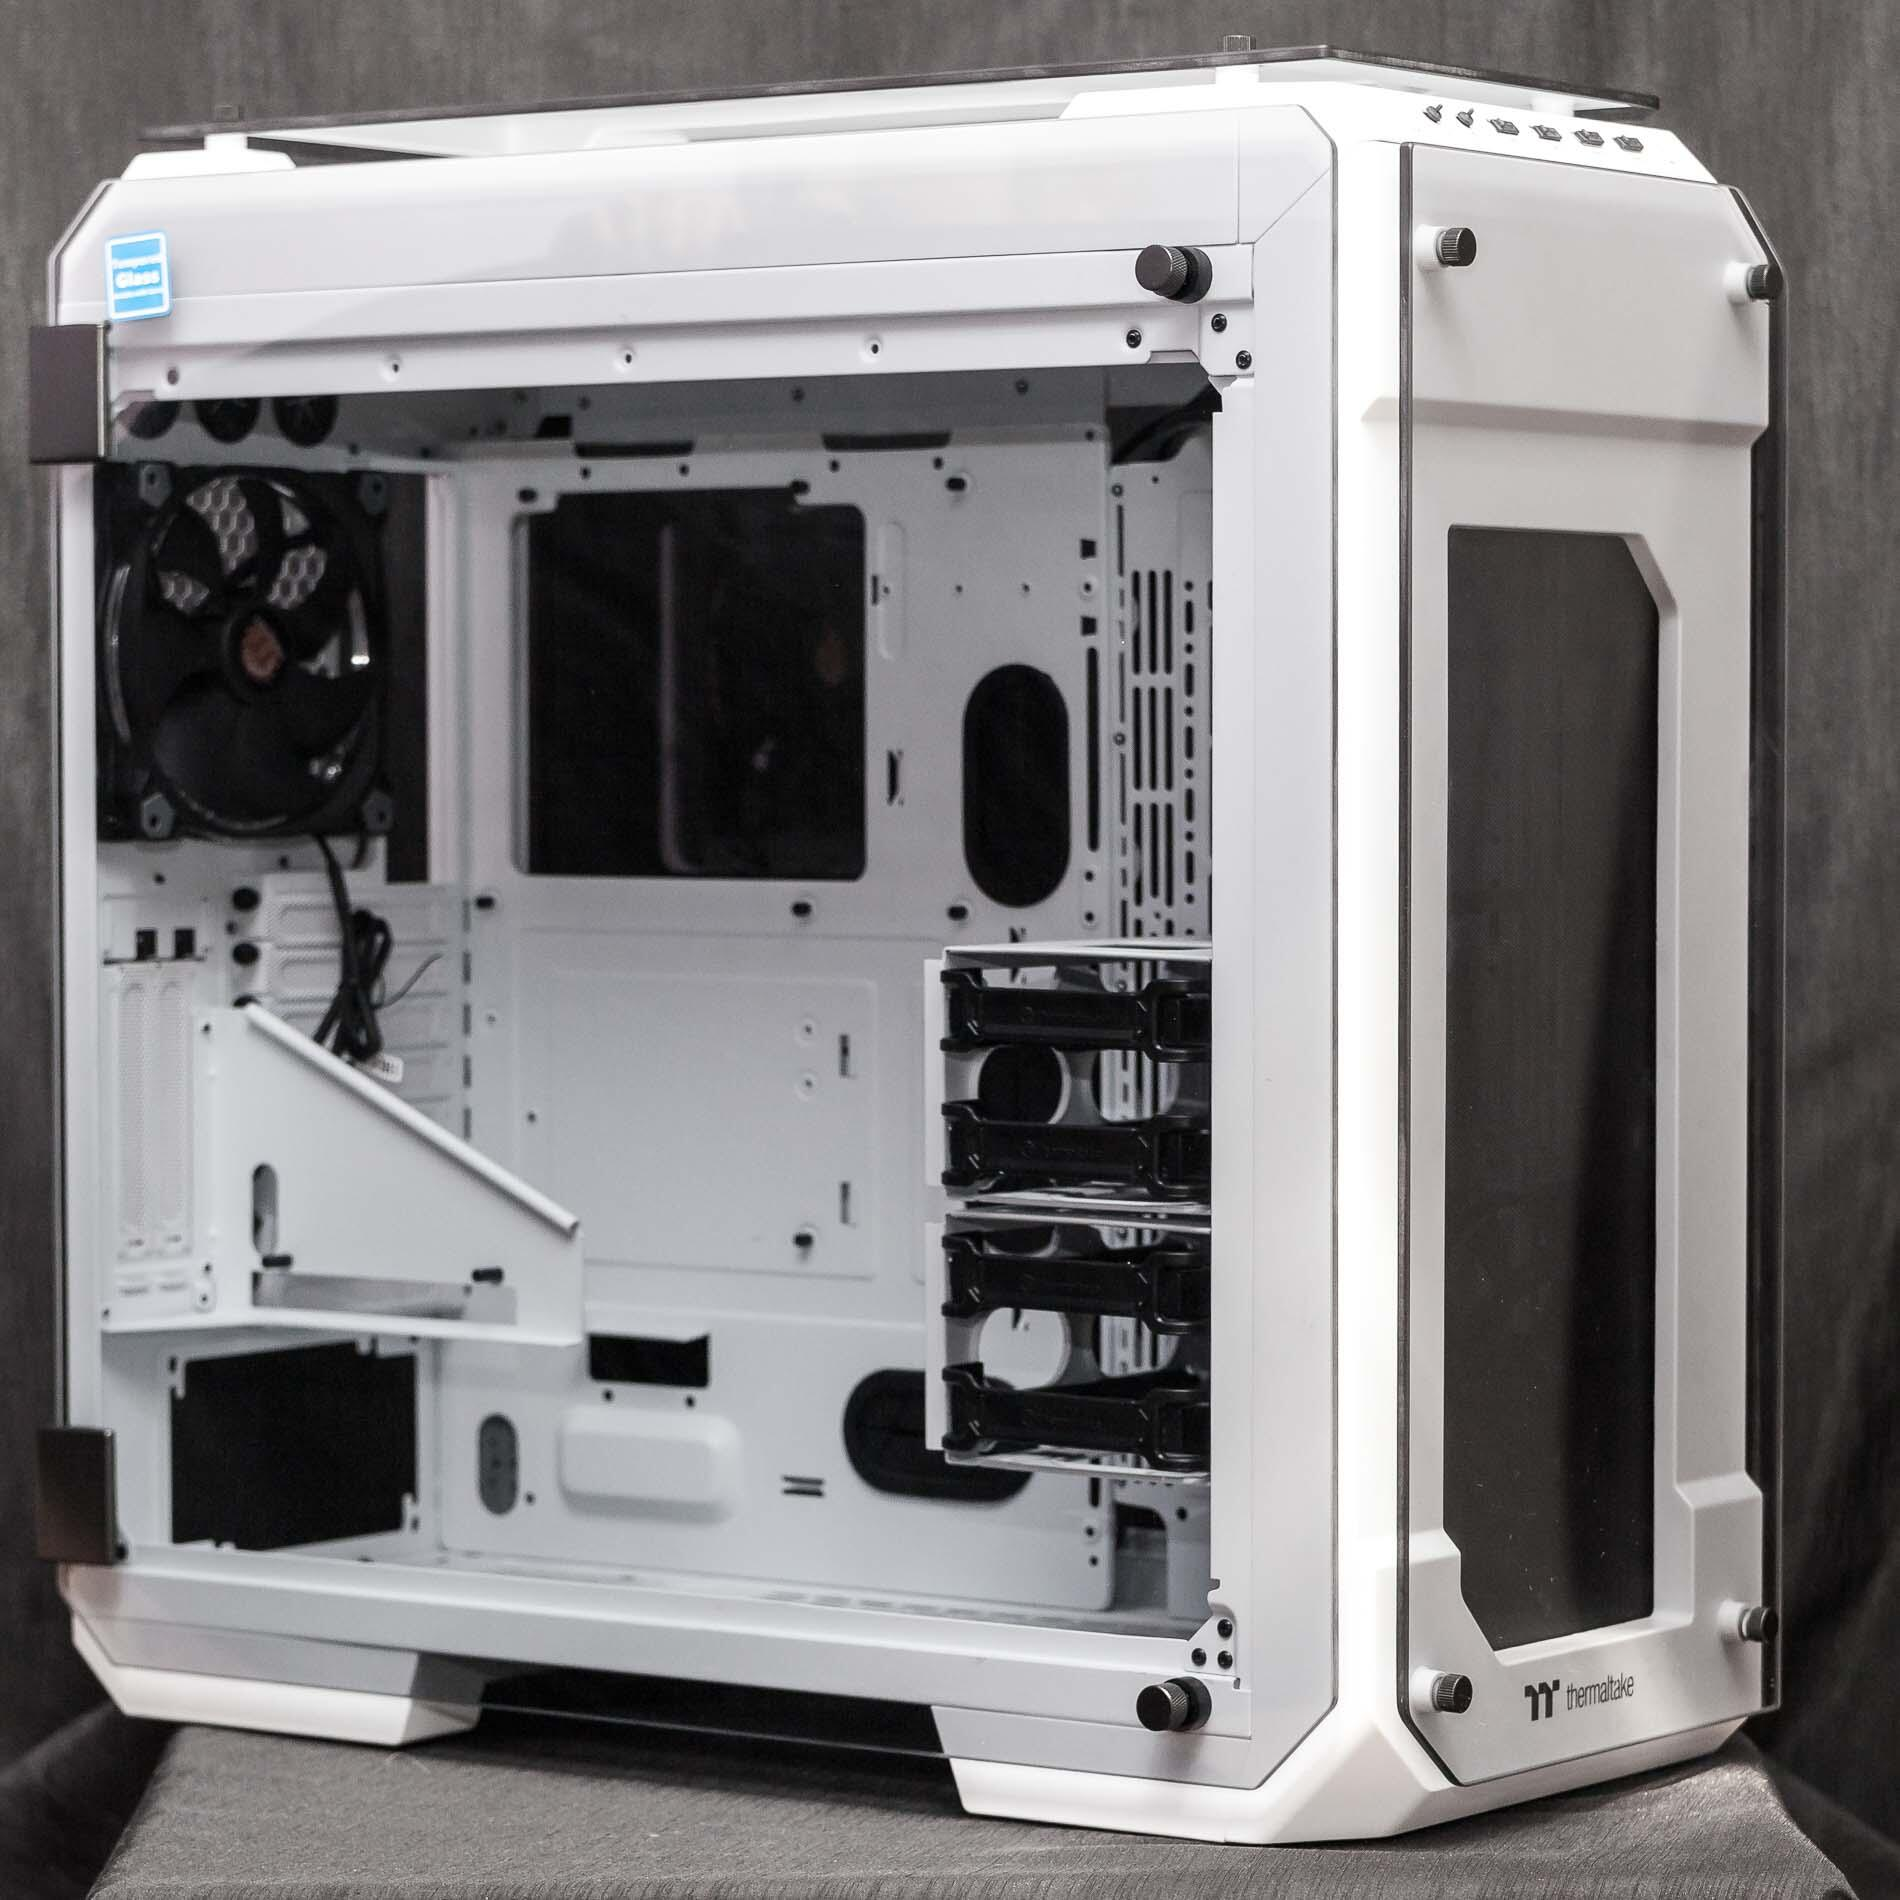 Kompyutery i komplektuyushcie - Obzor korpusa Thermaltake View 71 Tempered Glass Snow Edition